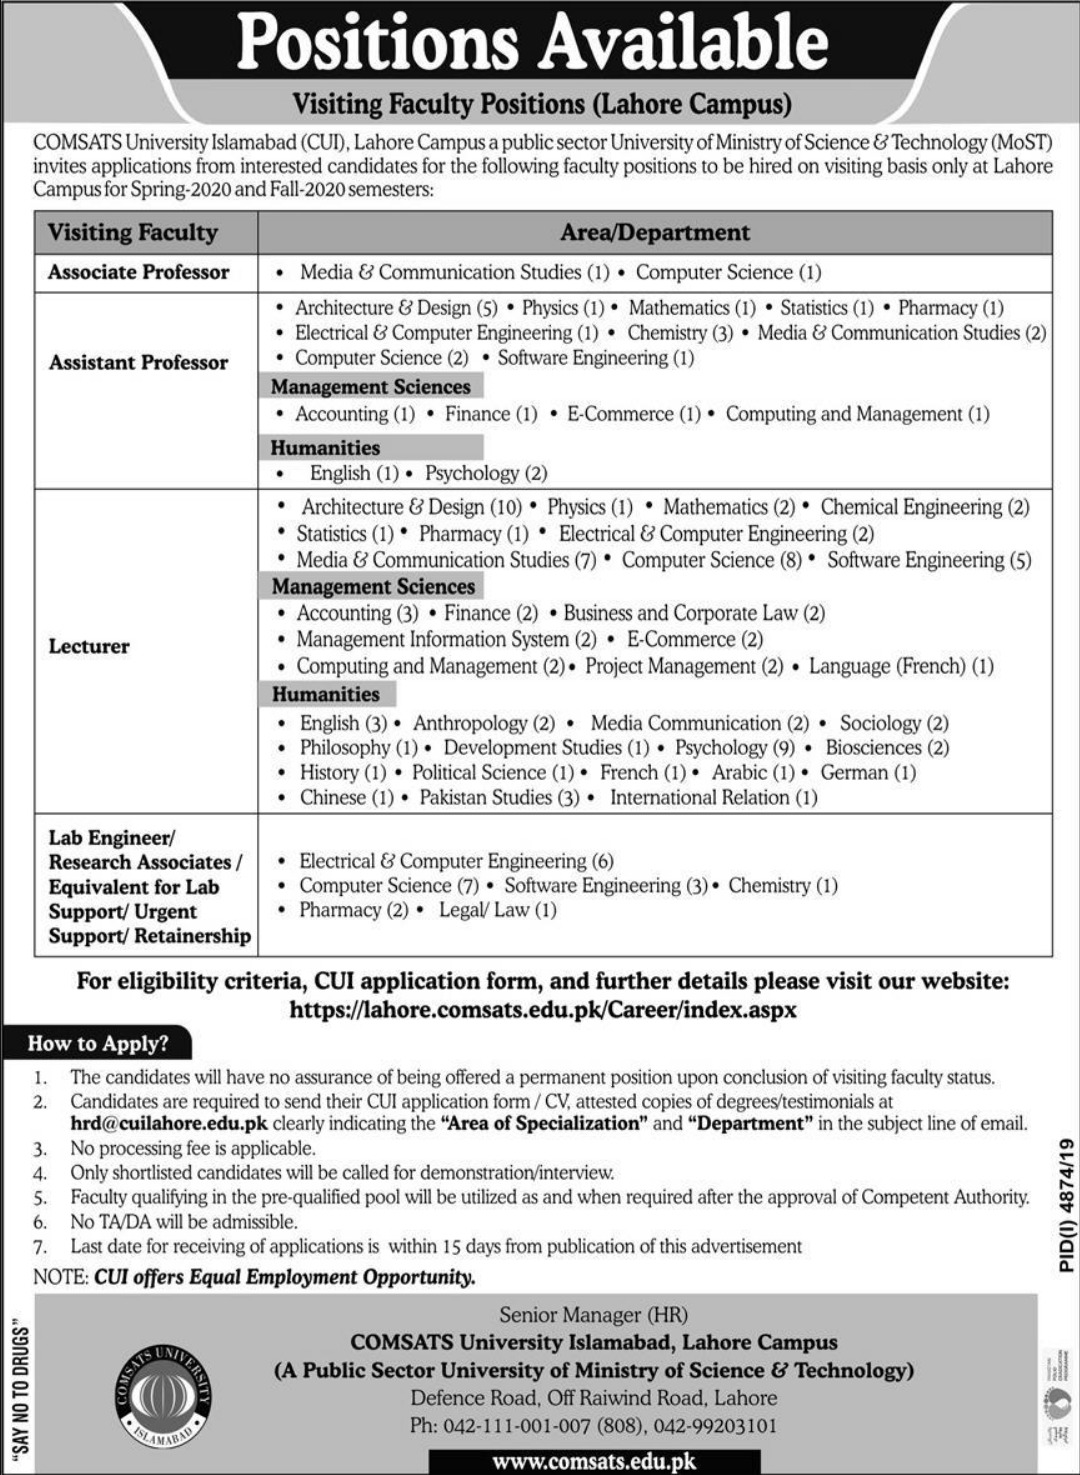 COMSATS University Islamabad CUI Jobs 2020 Lahore Campus